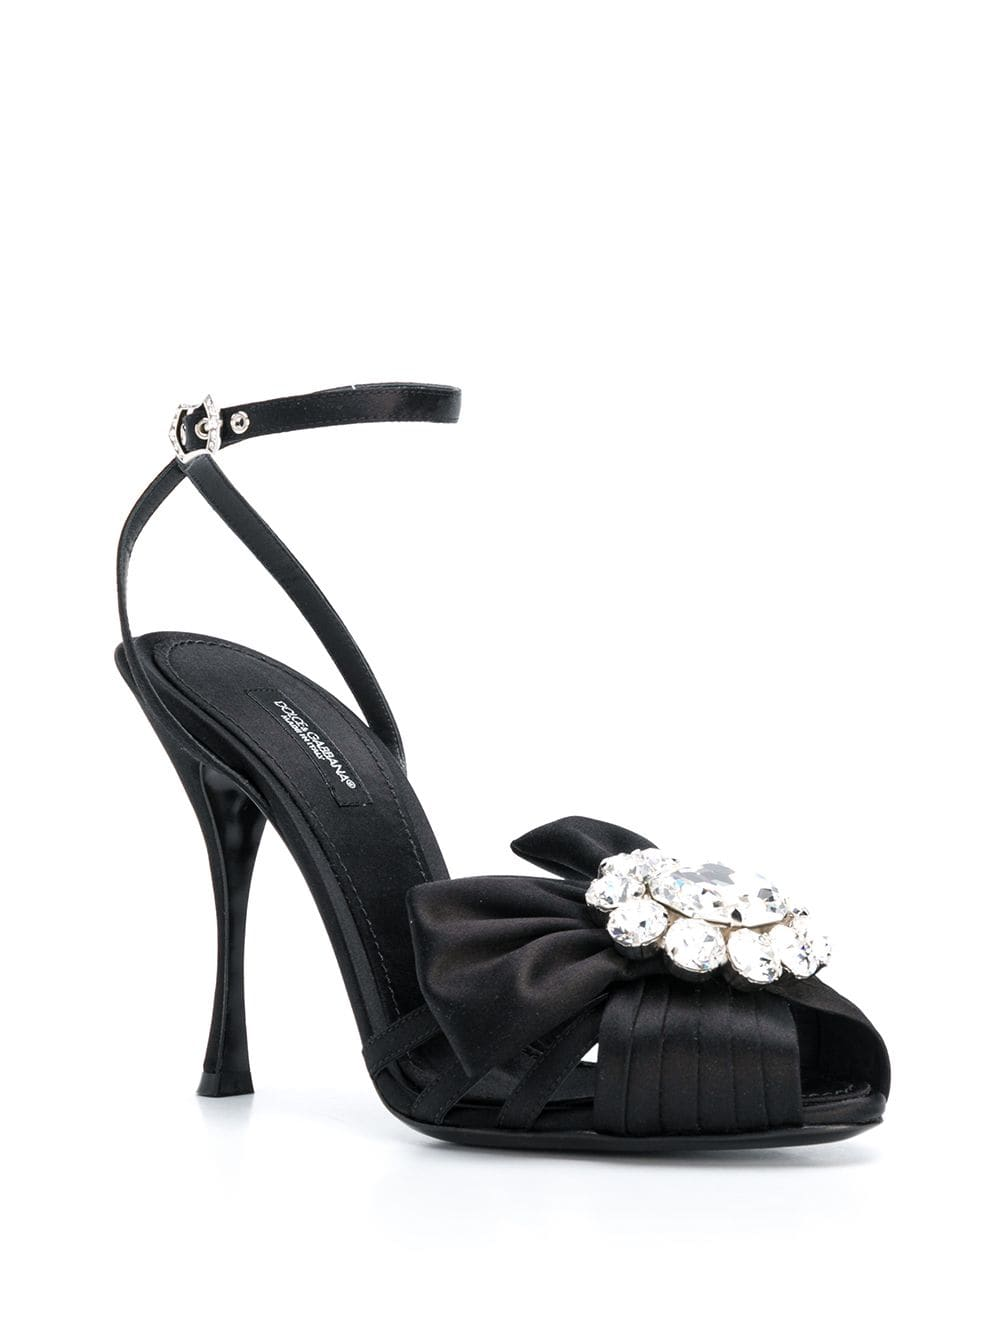 Bejeweled stiletto sandals